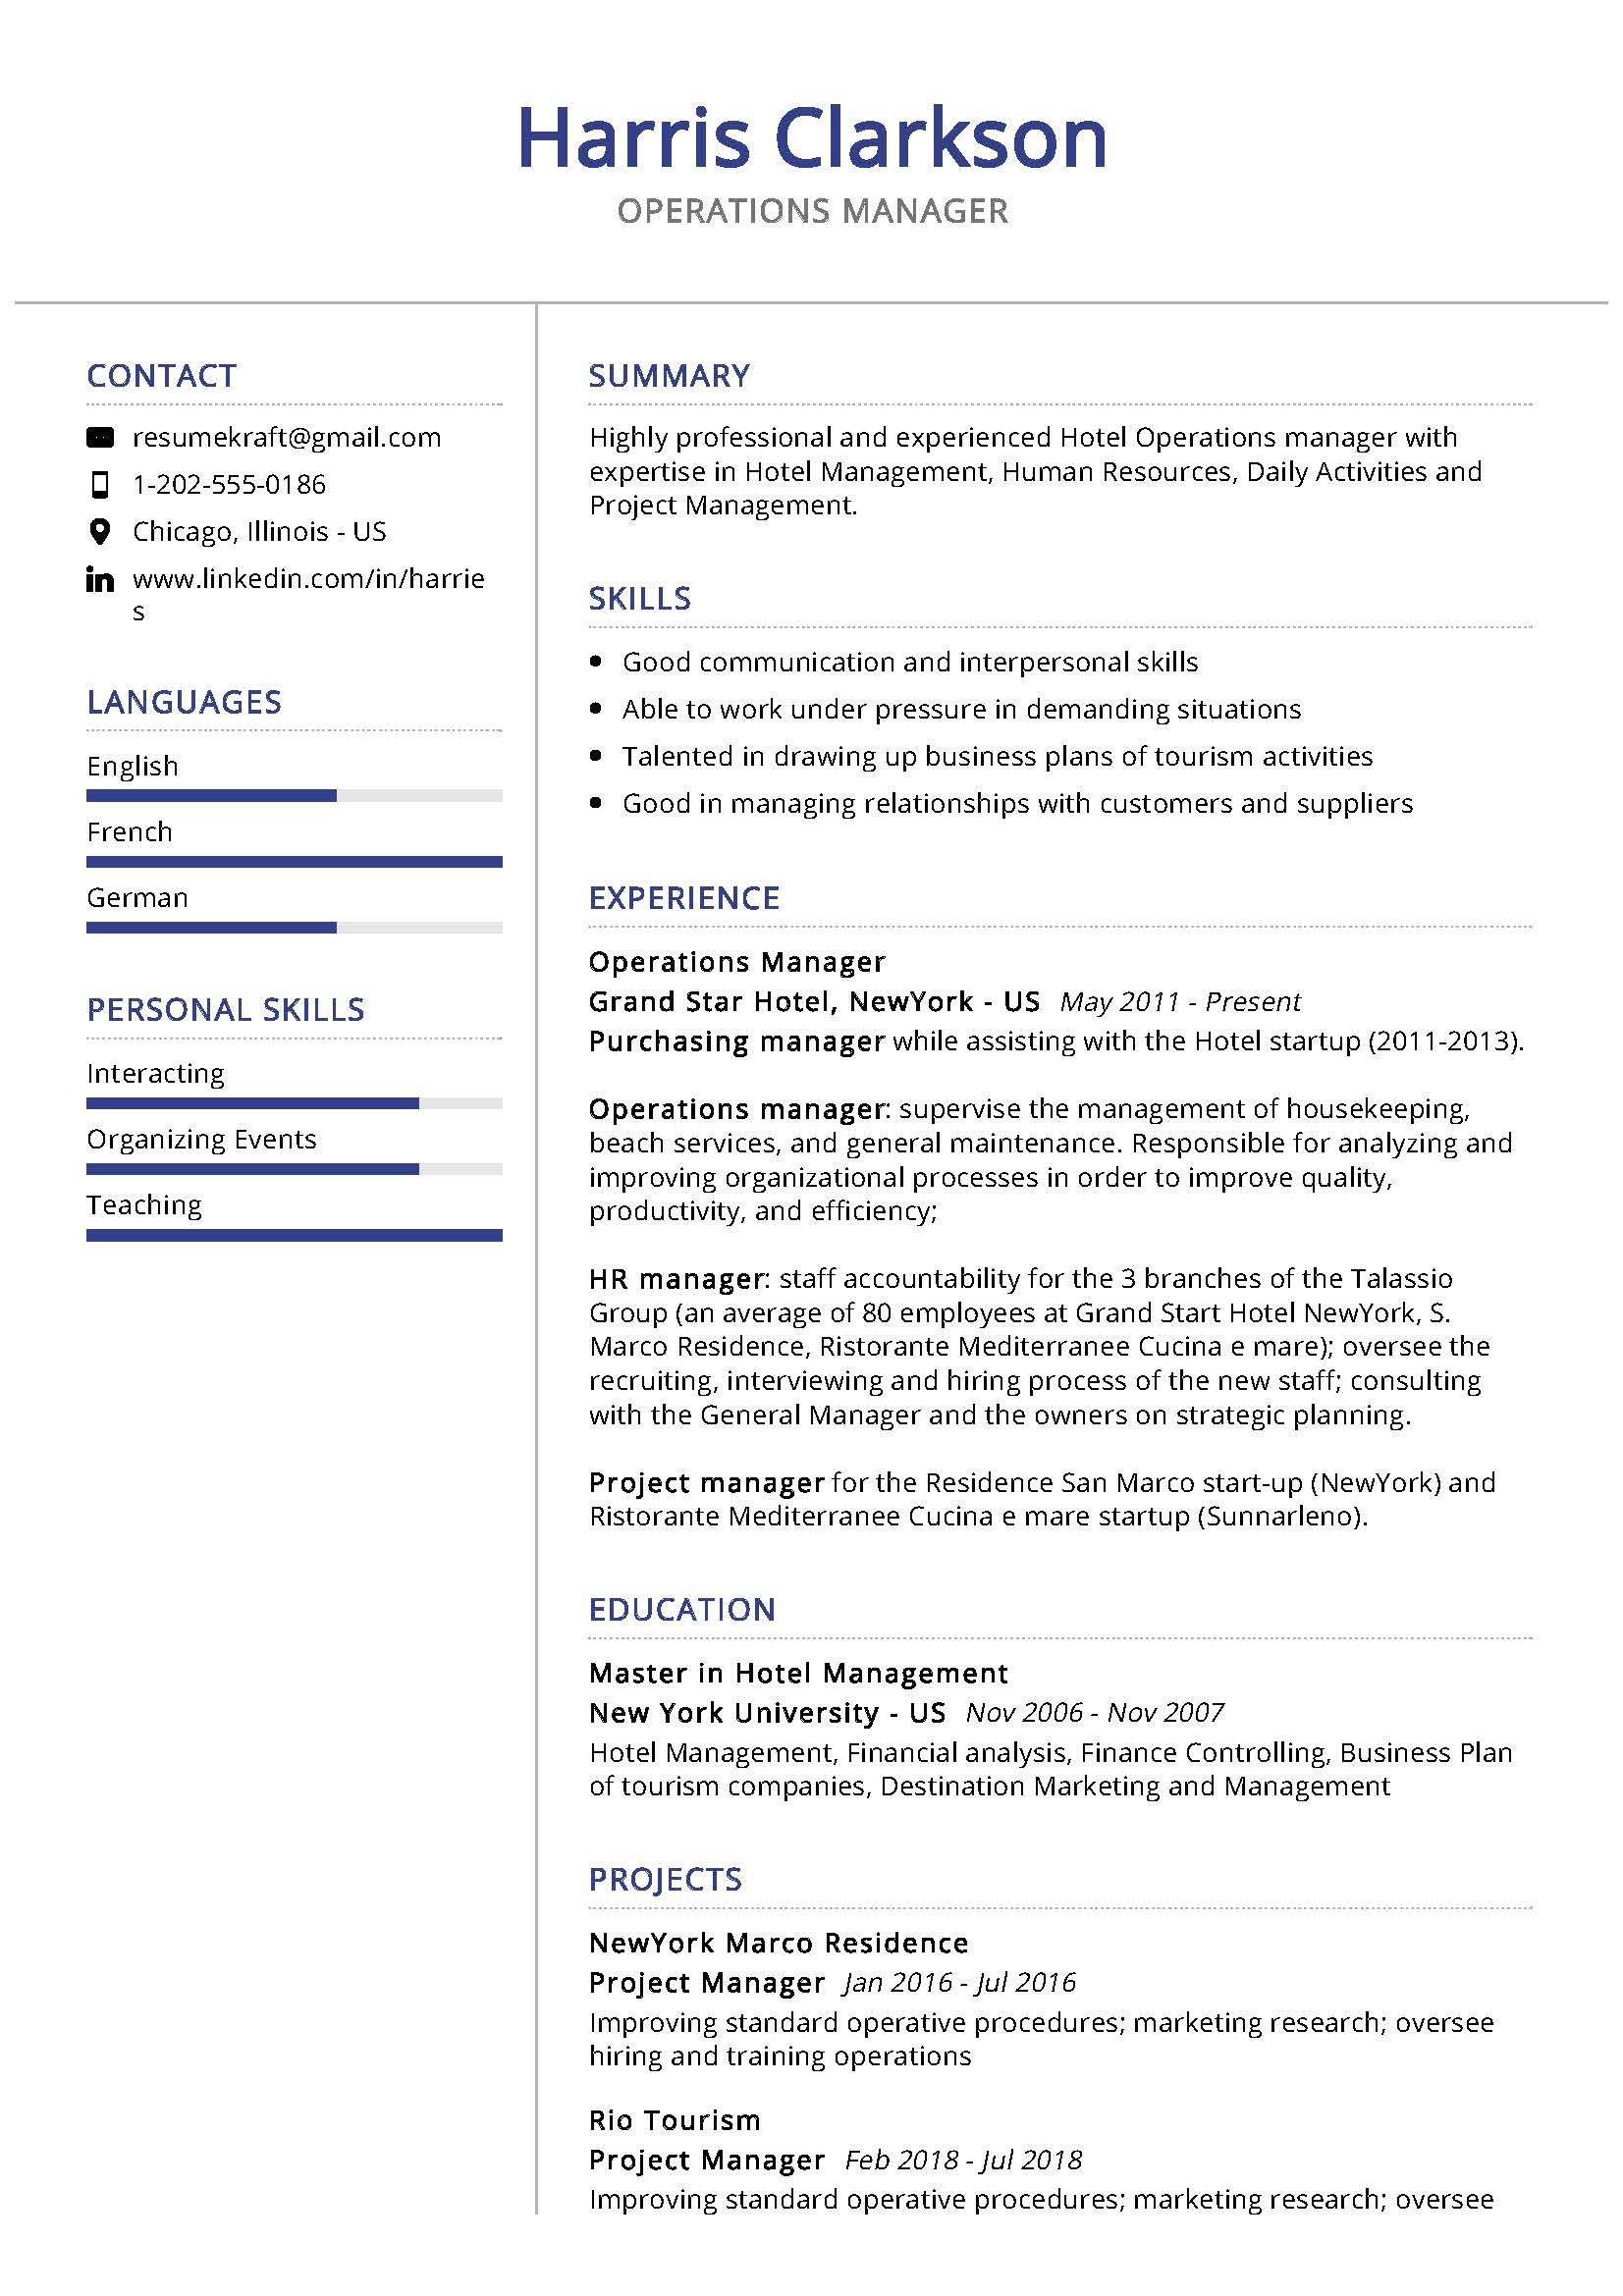 operations manager resume sample writing tips resumekraft hotel general template system Resume Hotel General Manager Resume Template